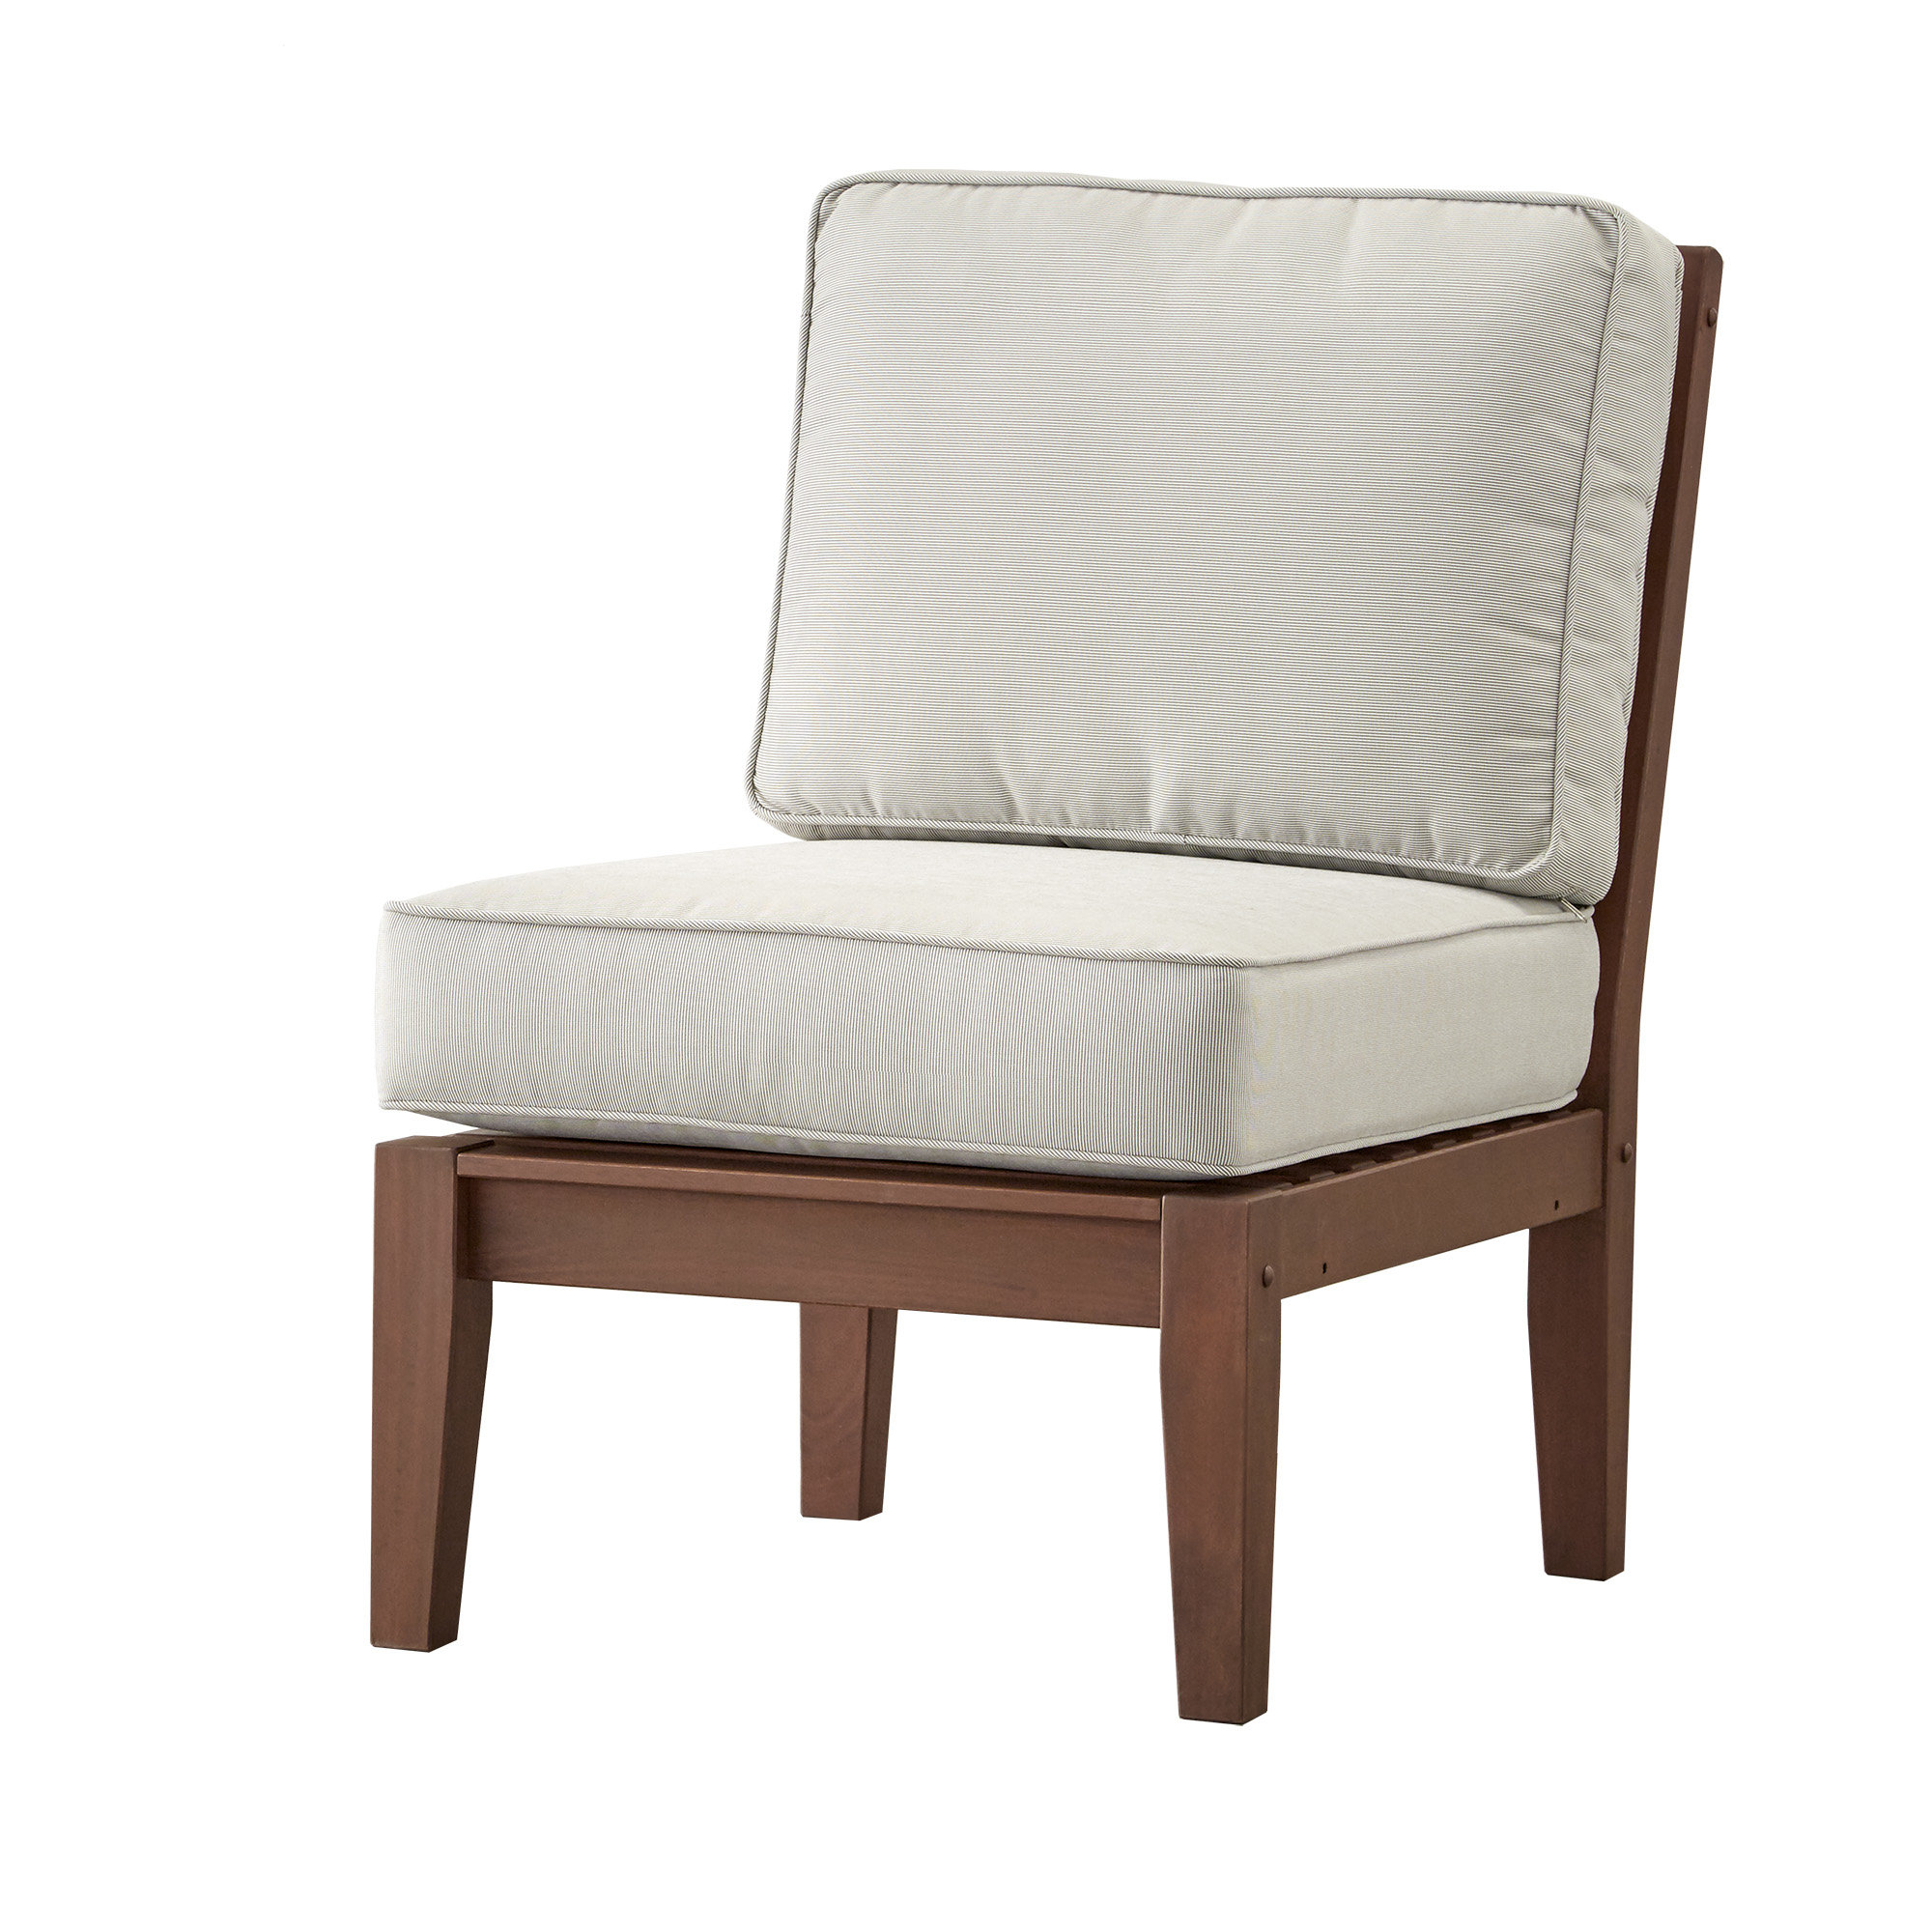 Most Recently Released Hursey Armless Chair With Cushion Pertaining To Hursey Patio Sectionals (View 18 of 20)